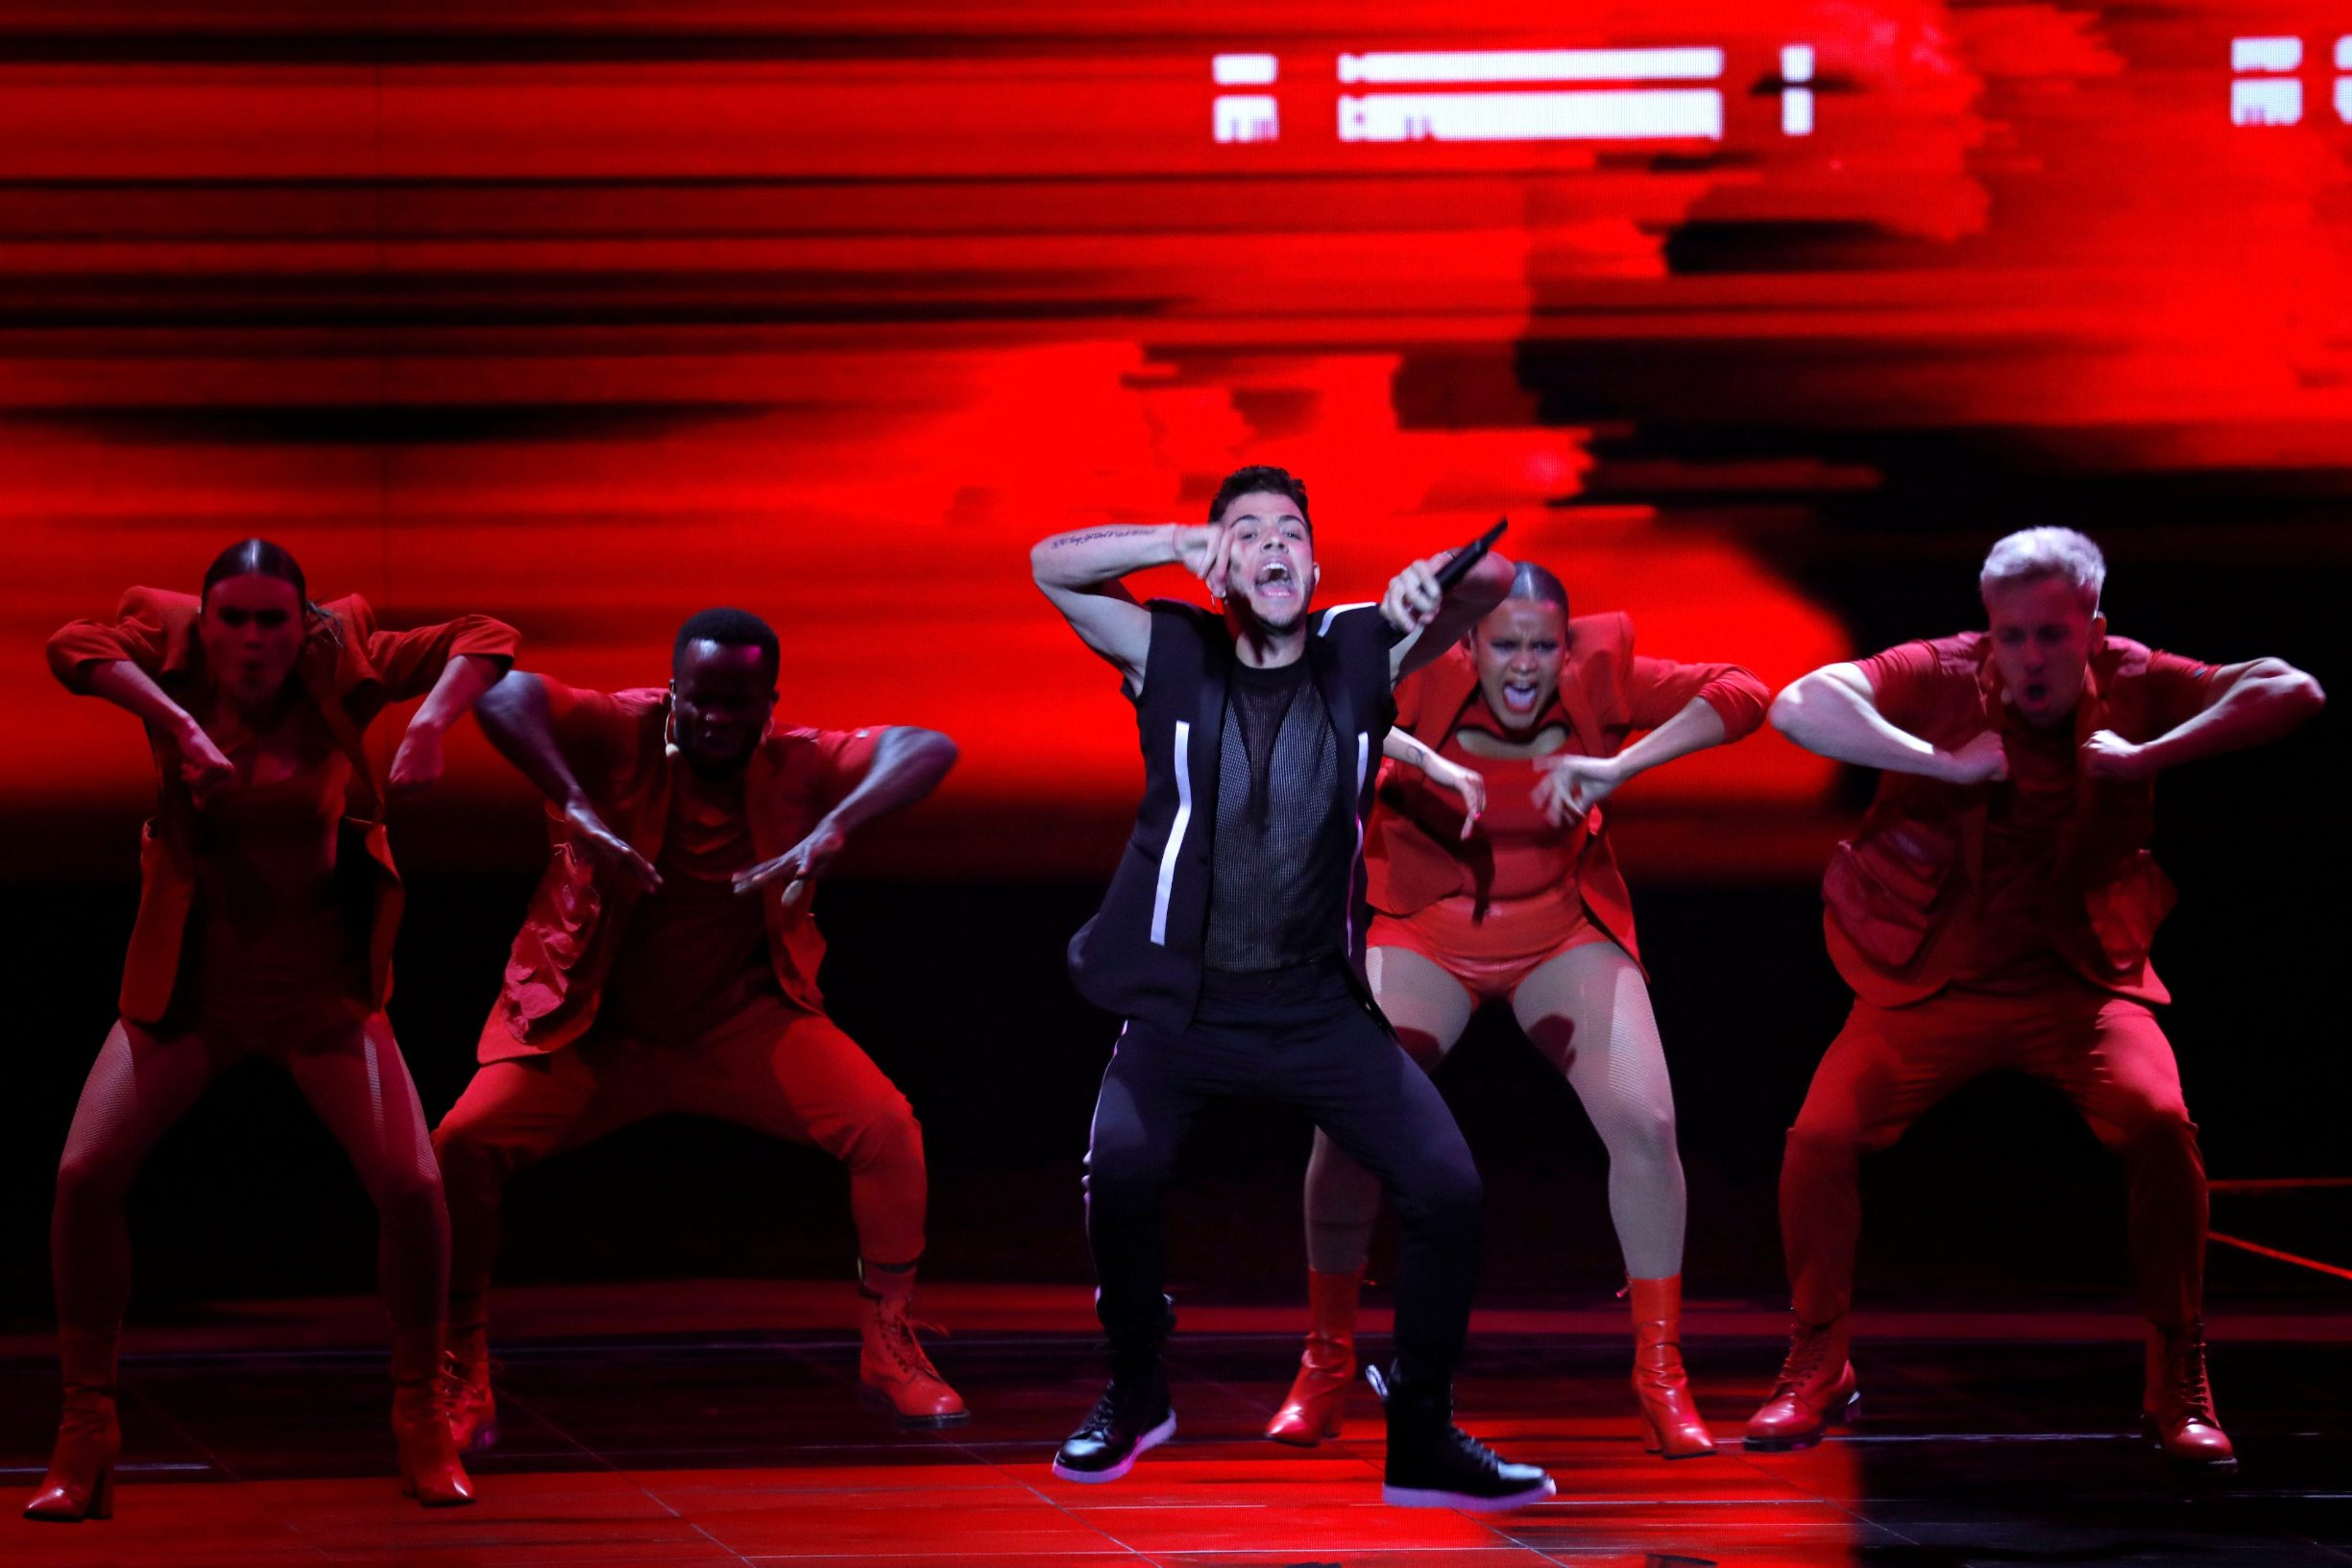 Participant Luca Hanni of Switzerland performs during second semi-final of 2019 Eurovision Song Contest in Tel Aviv, Israel May 16, 2019. REUTERS/Amir Cohen